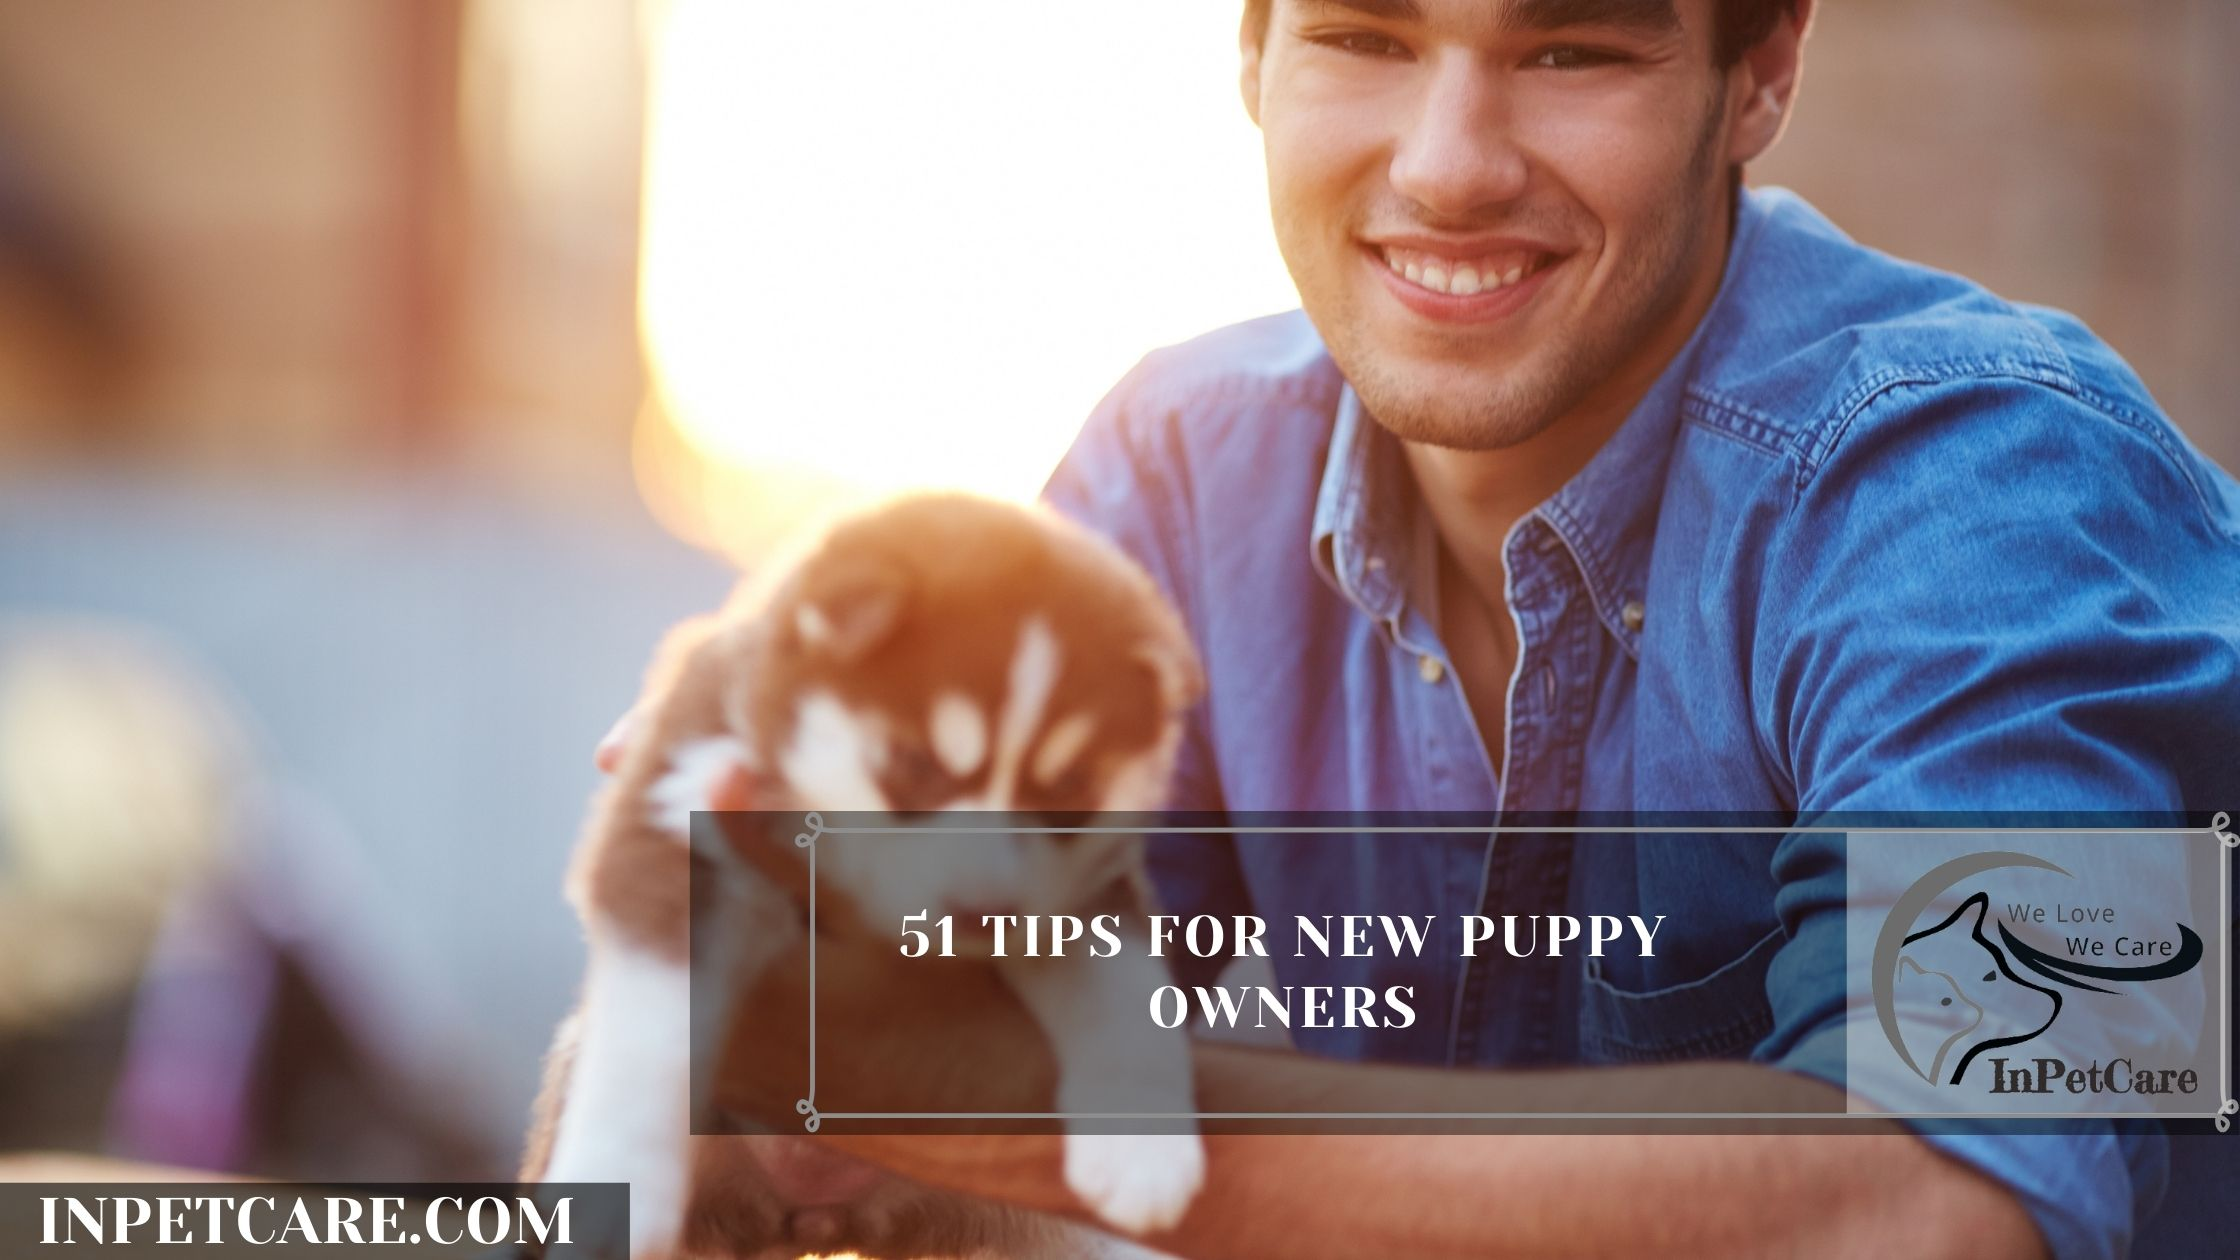 51 Tips For New Puppy Owners